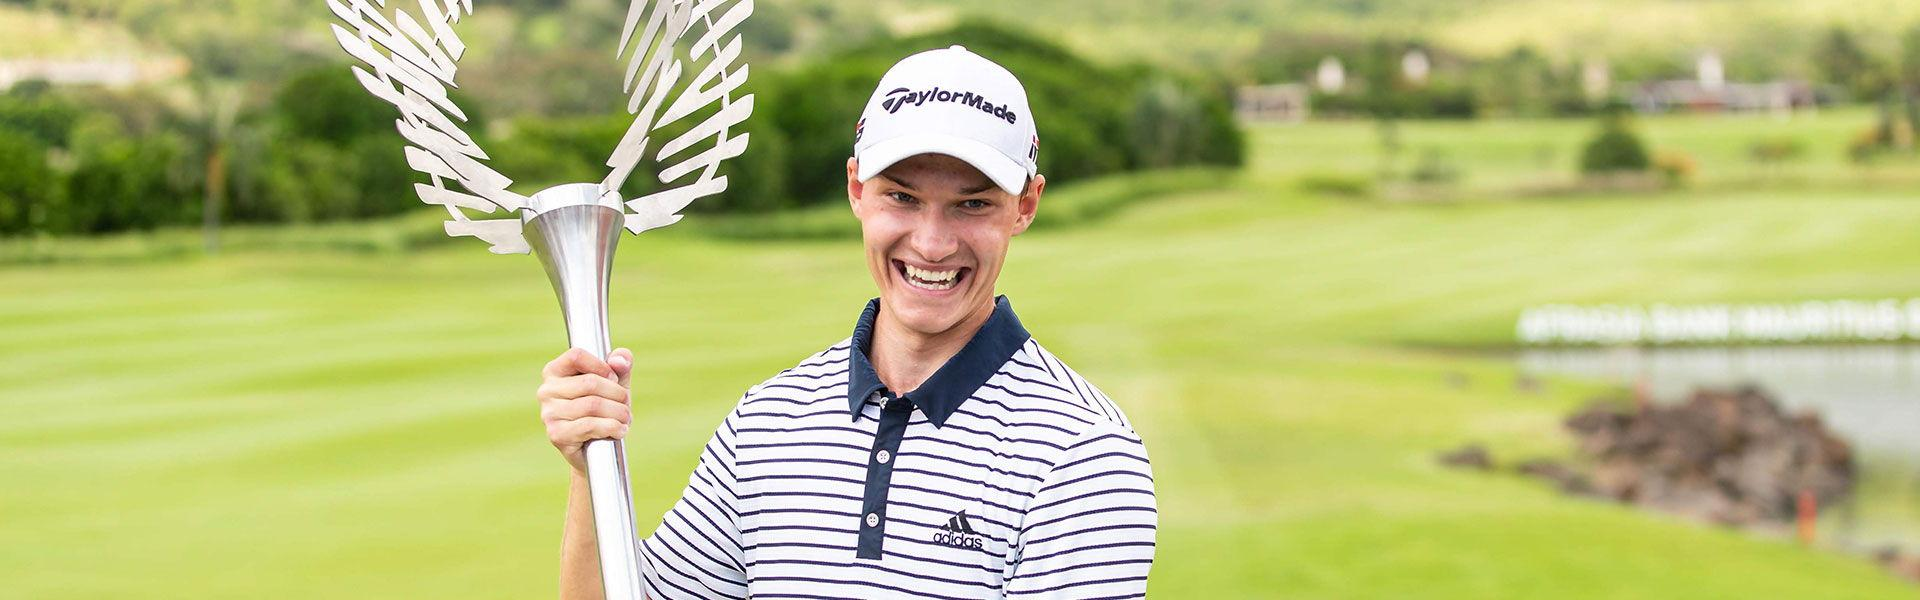 Rasmus Hojgaard winner of the AfrAsia Bank Mauritius Open 2019